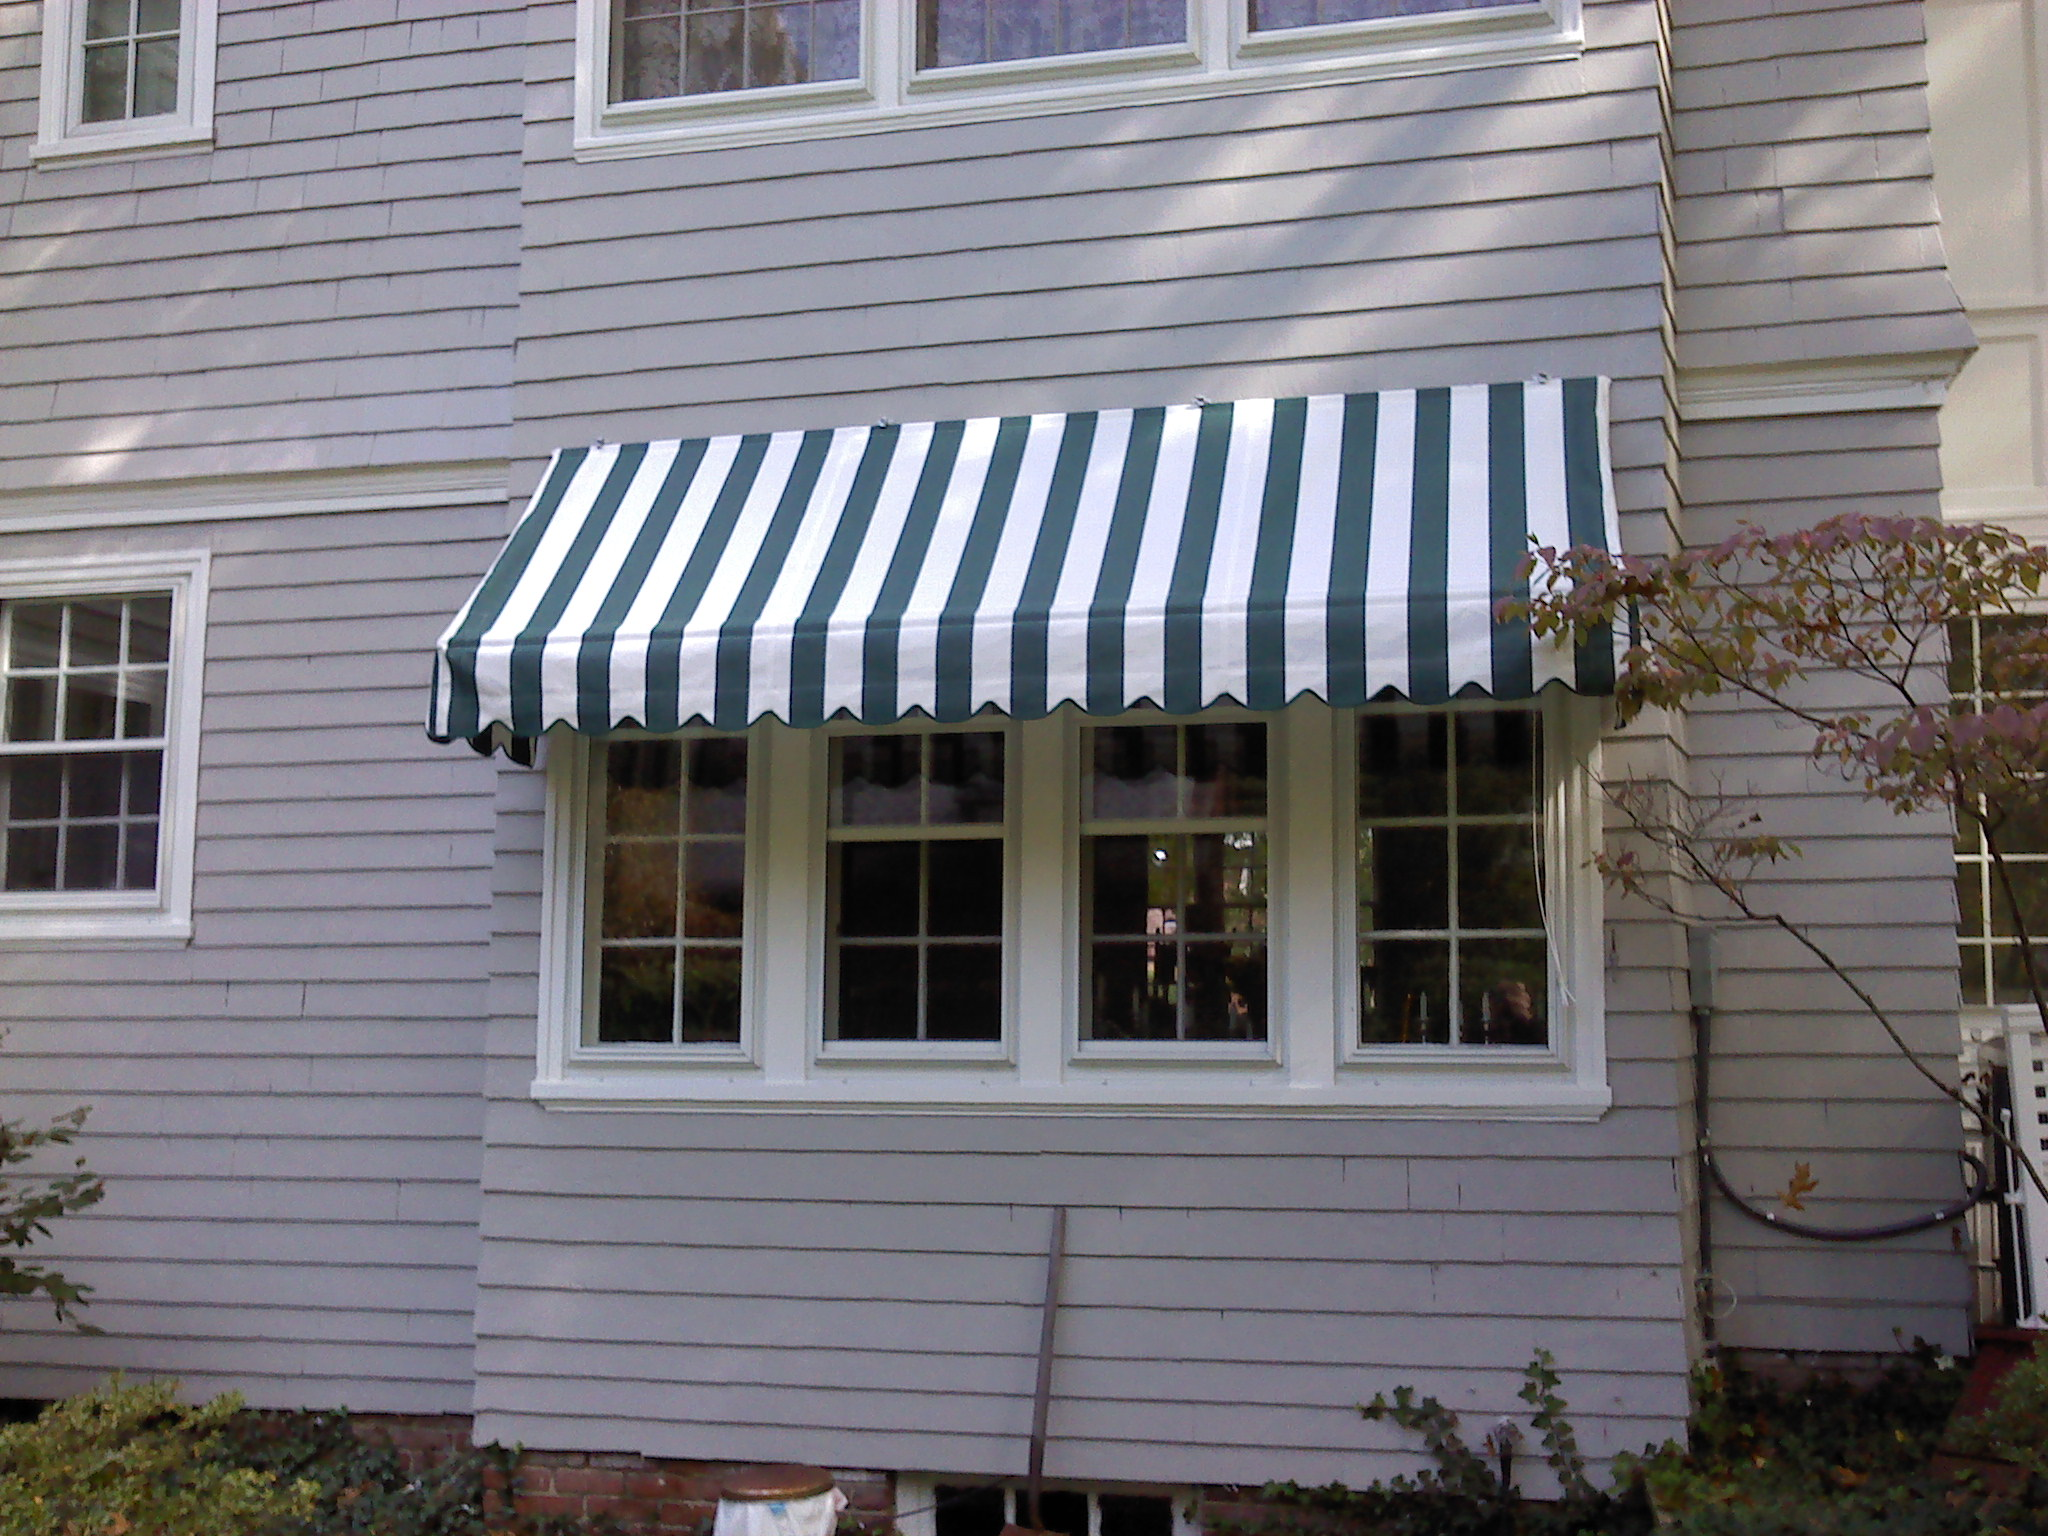 Retractable Awnings Window Awnings Awning Manufacturer